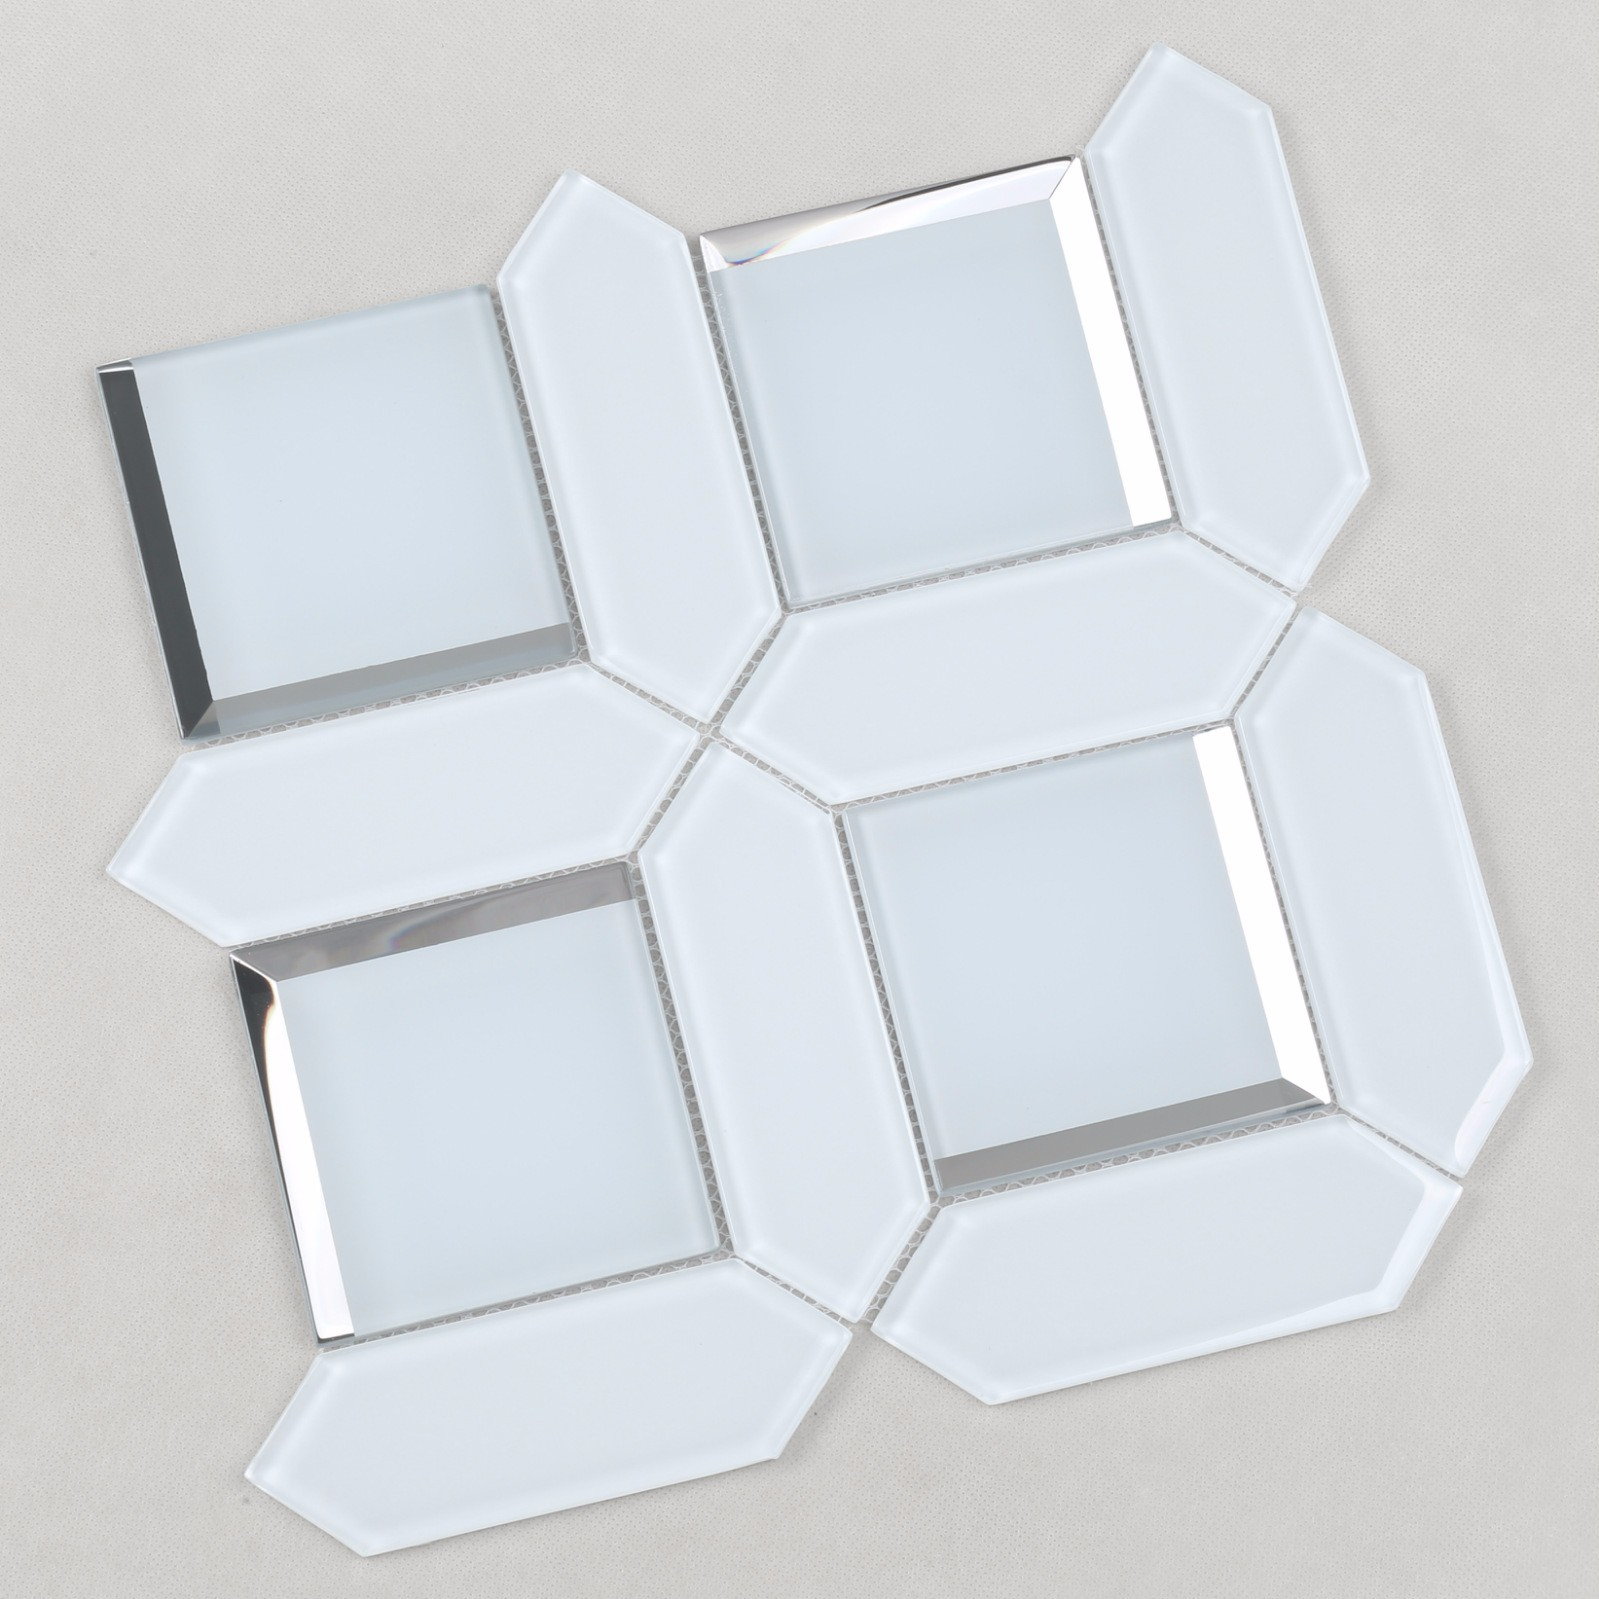 product-Heng Xing-HMB124 Ultra Clear White Bevel Glass Mosaic for Bathroom, living room, wash room-i